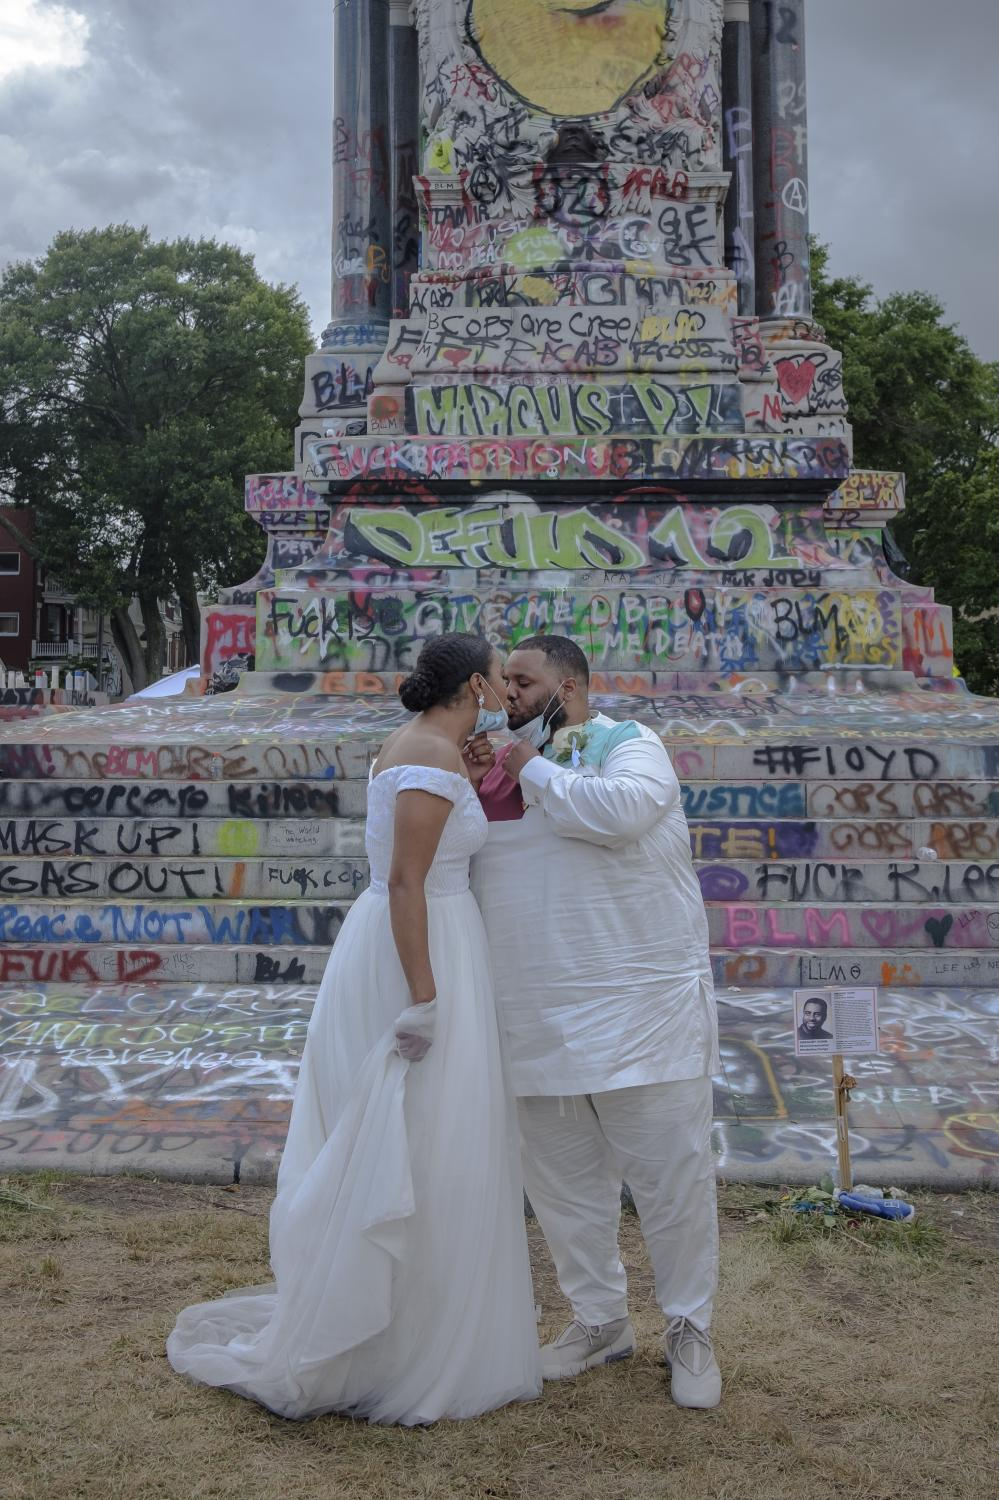 """RICHMOND, VA - June 20, 2020: Bride Chaela Wilson and groom Marcus Wilson kiss at the Robert E. Lee Statue on June 21, 2020. To celebrate the """"Juneteenth,"""" Richmond residents gather to honor those who have been killed by police officers and to protest police brutality on June 21, 2020 at Monument Avenue. The monument has been claimed by the community and has become a healing space where parents take photos with their children, play basketball and share a meal on the now proclaimed """"Marcus-David Petters Circle"""". The Robert E. Lee memorial has been renamed in honor of the young Marcus-David Petters, who was shot and killed by a Richmond police officer on May 14, 2018. Photo: Carlos Bernate for The New York Times."""